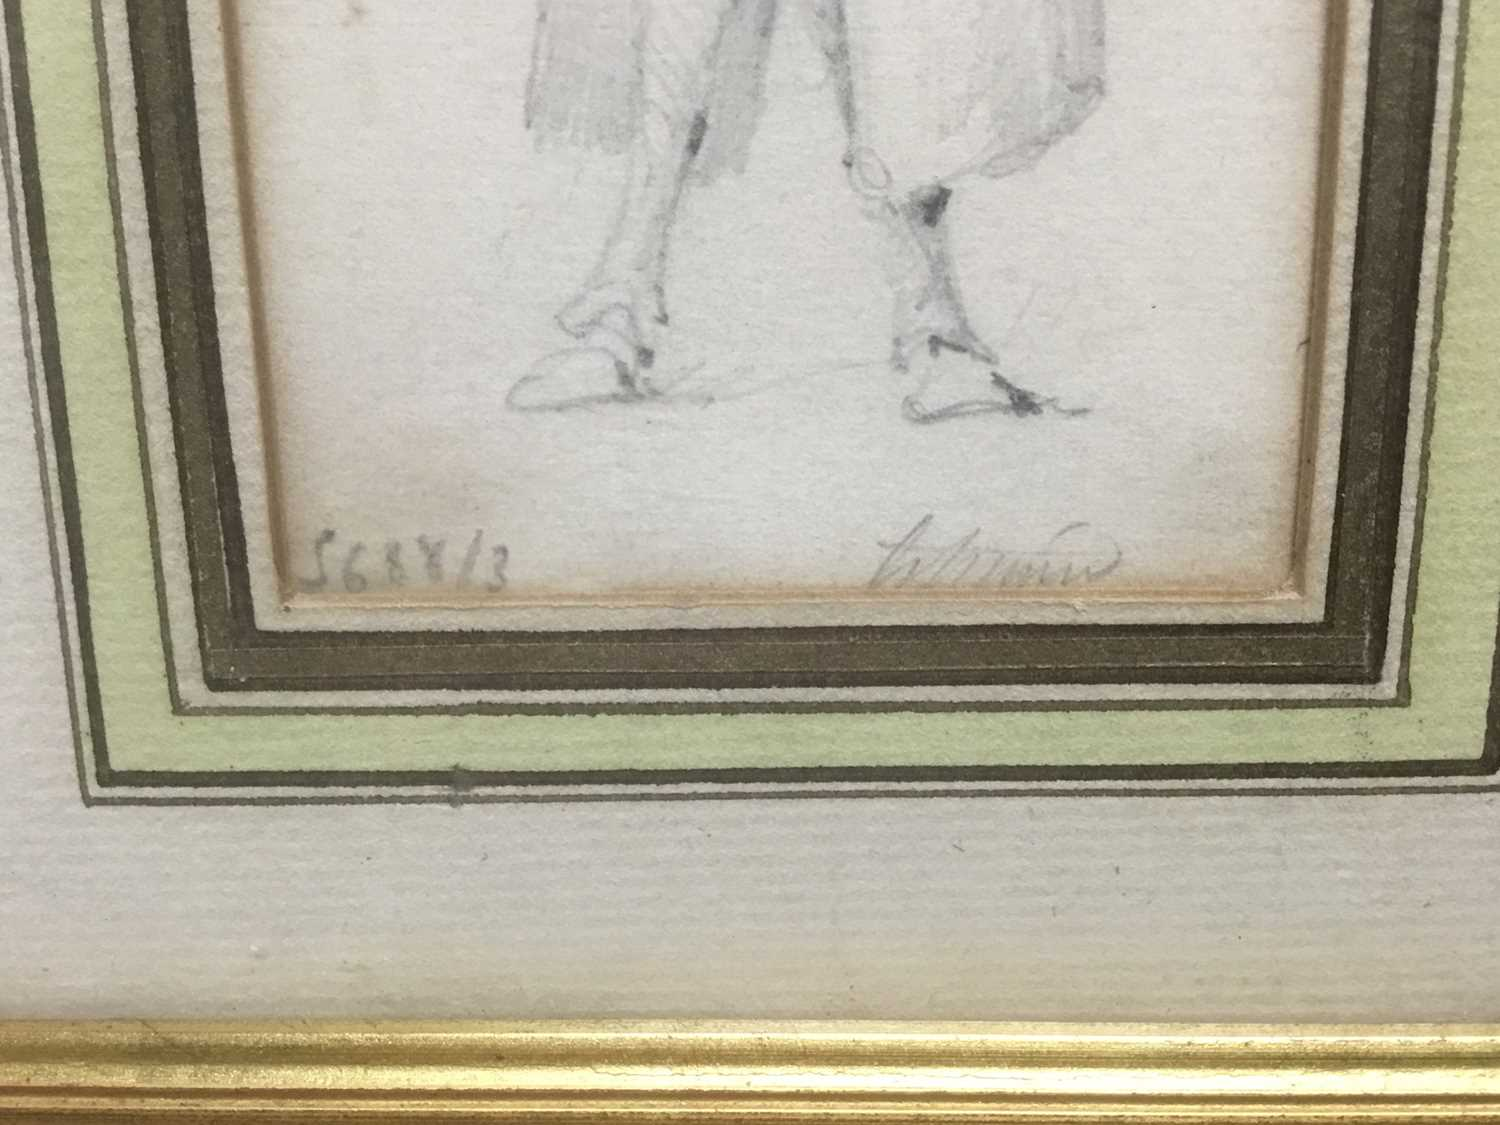 Henry Bonaventure Monnier (1805-1877) three pencil sketch caricatures of figures, tow signed, 14.5cm - Image 6 of 9